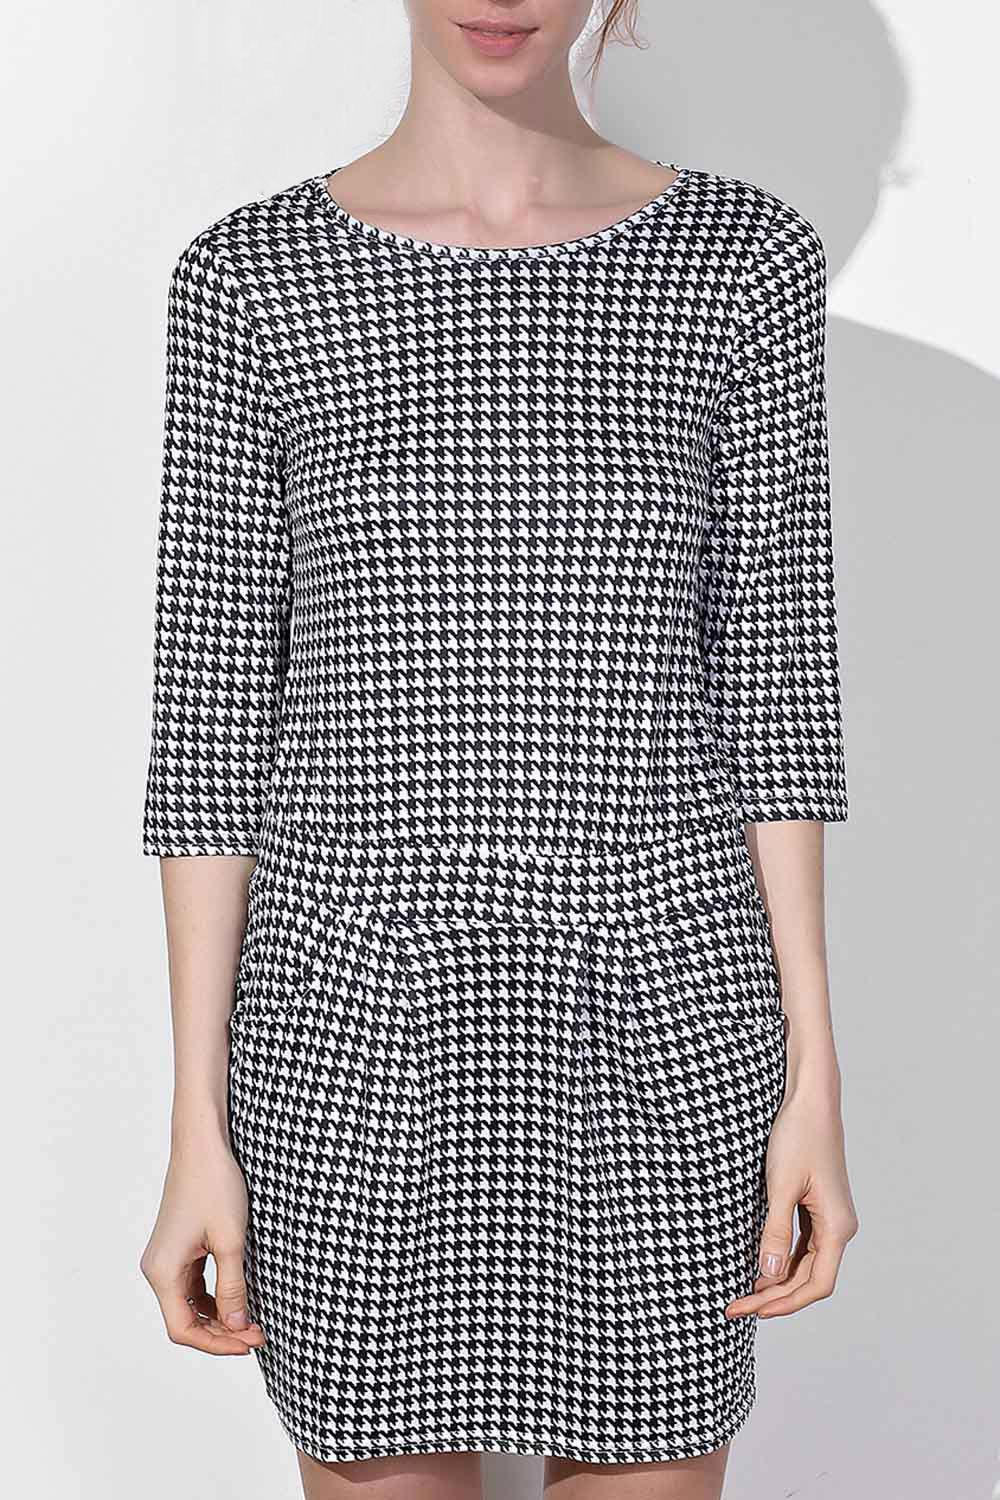 Trendy Houndstooth Printed Round Collar 3/4 Sleeve Dress For Women - BLACK S